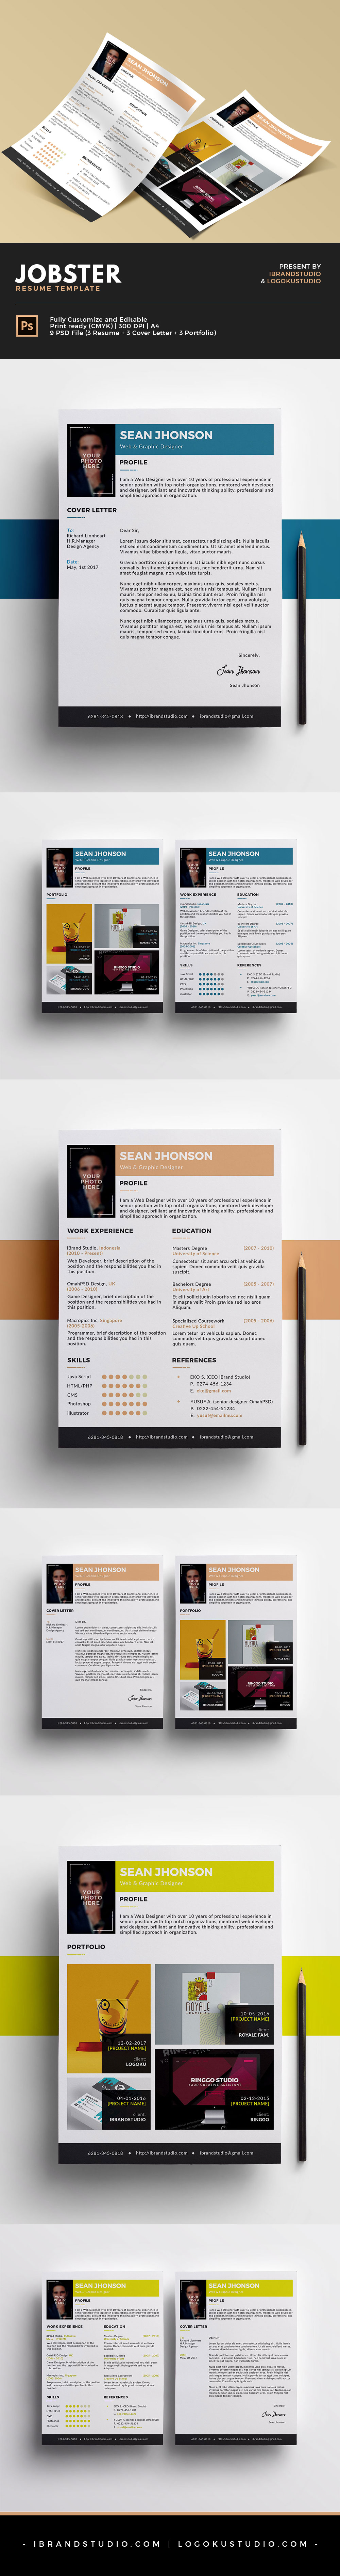 Free Jobster Resume Template